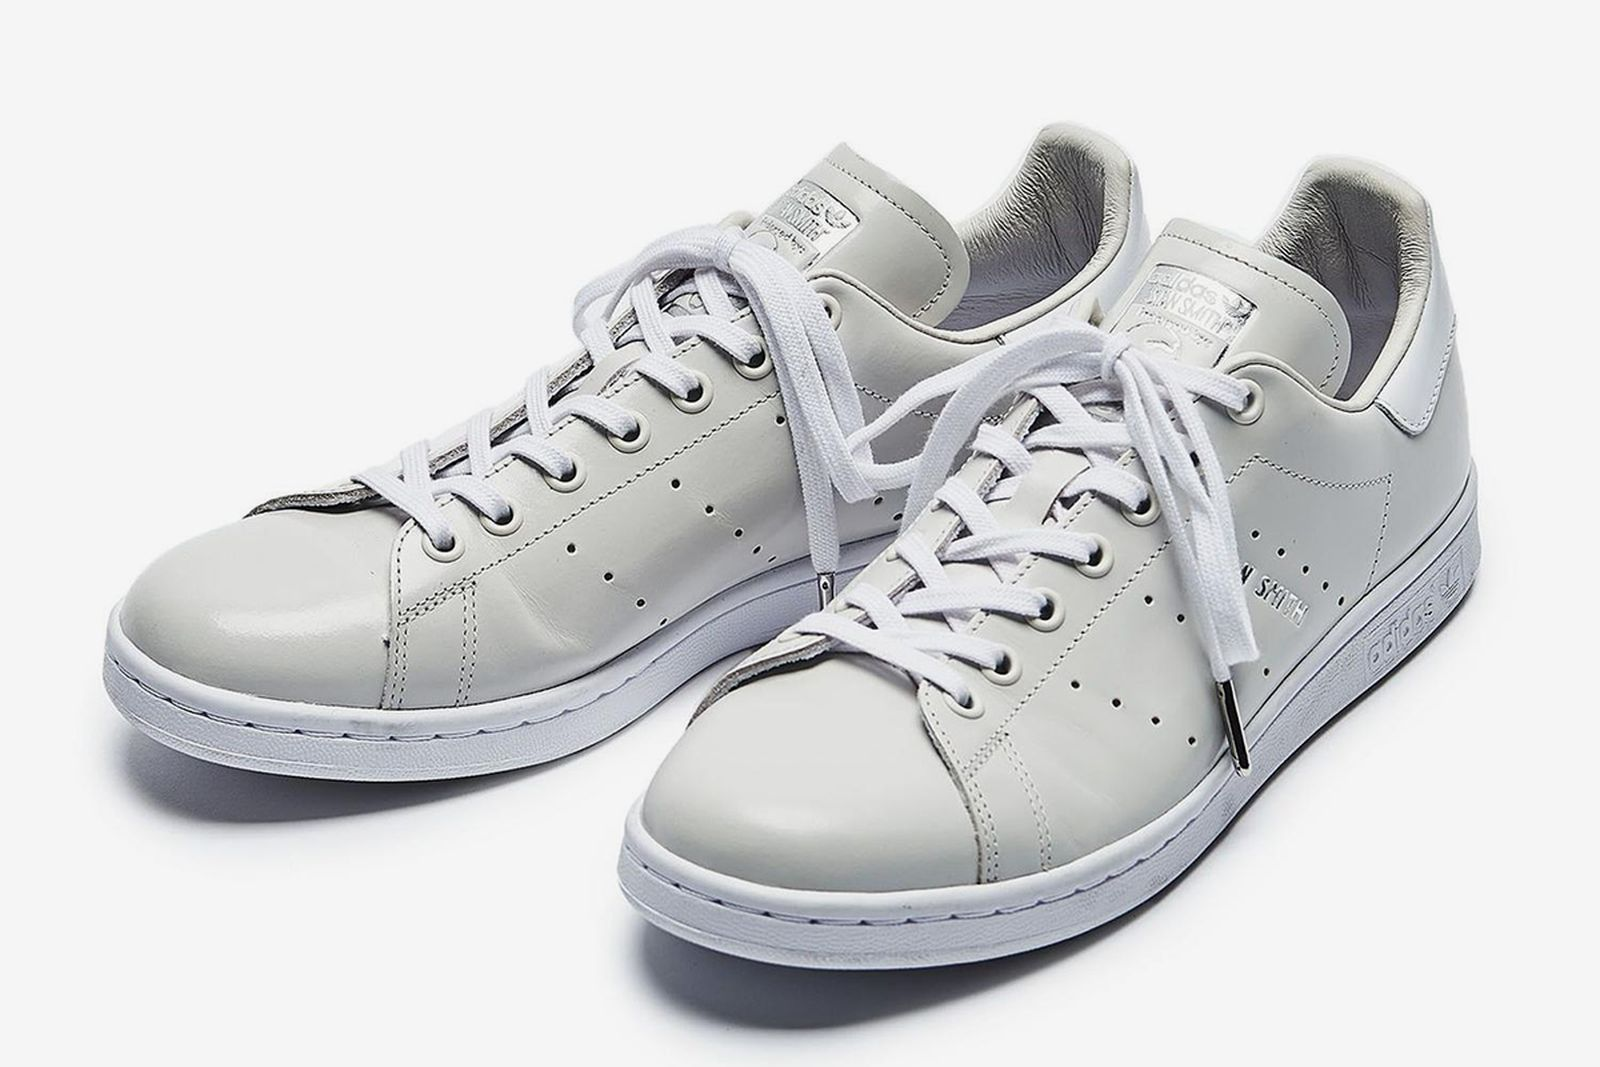 beauty-and-youth-adidas-stan-smith-release-date-price-09